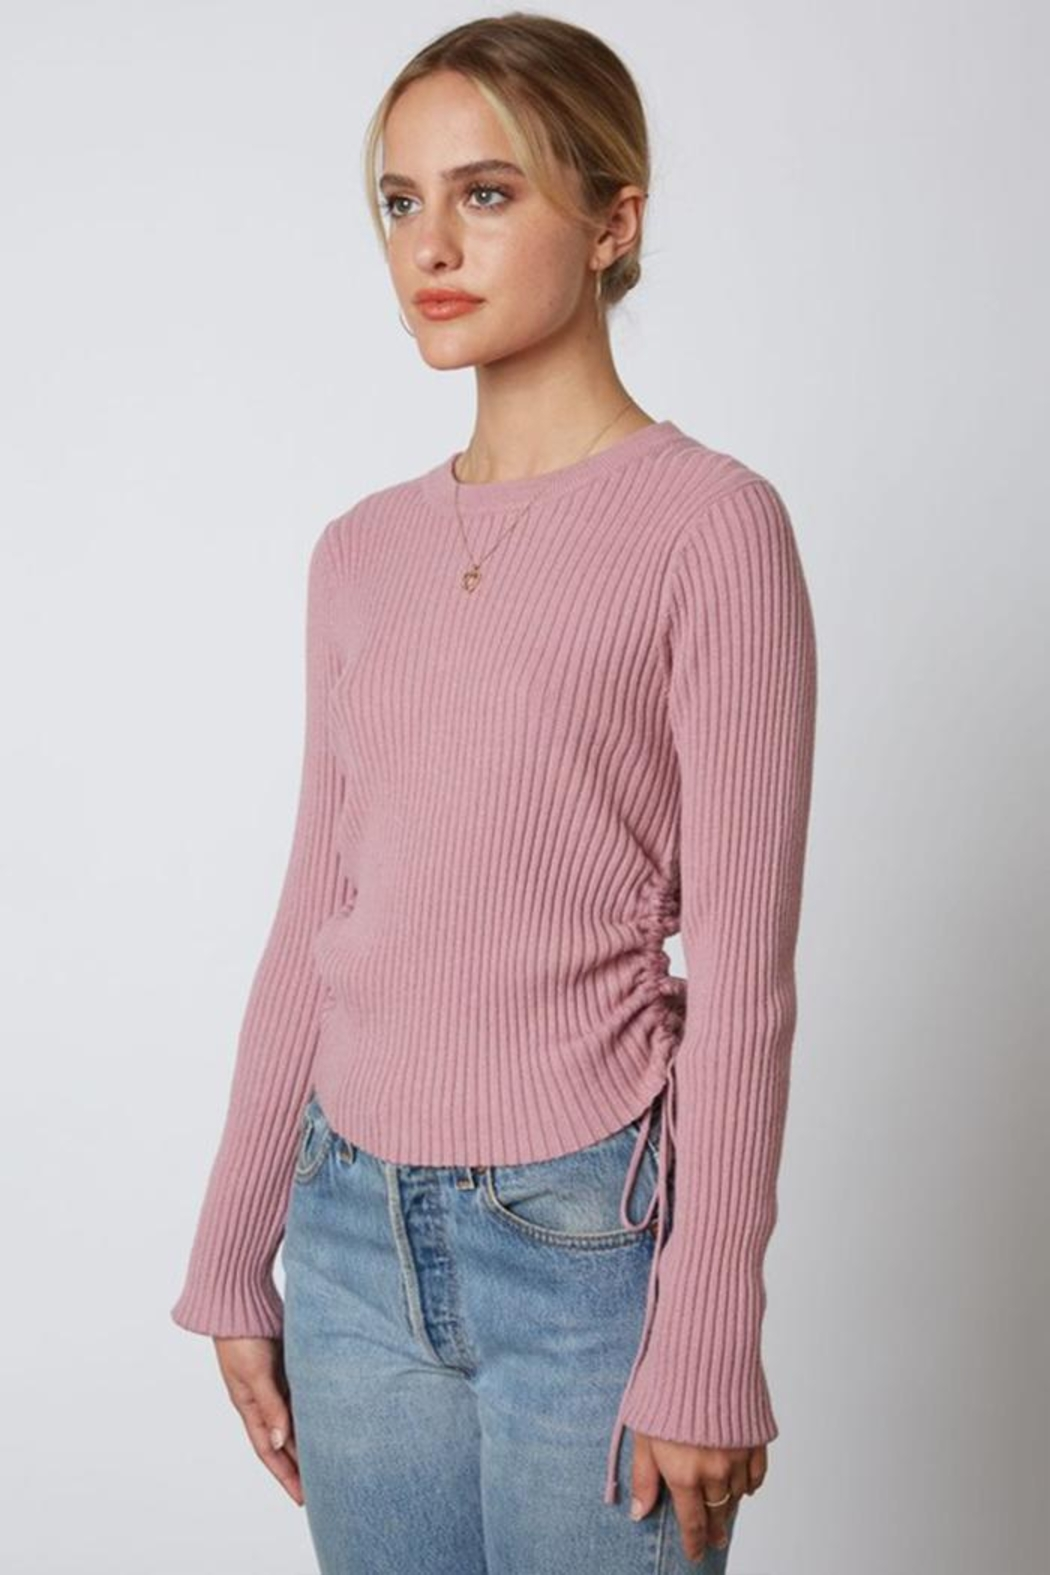 Cotton Candy LA Ribbed Cinched Sweater - Front Full Image